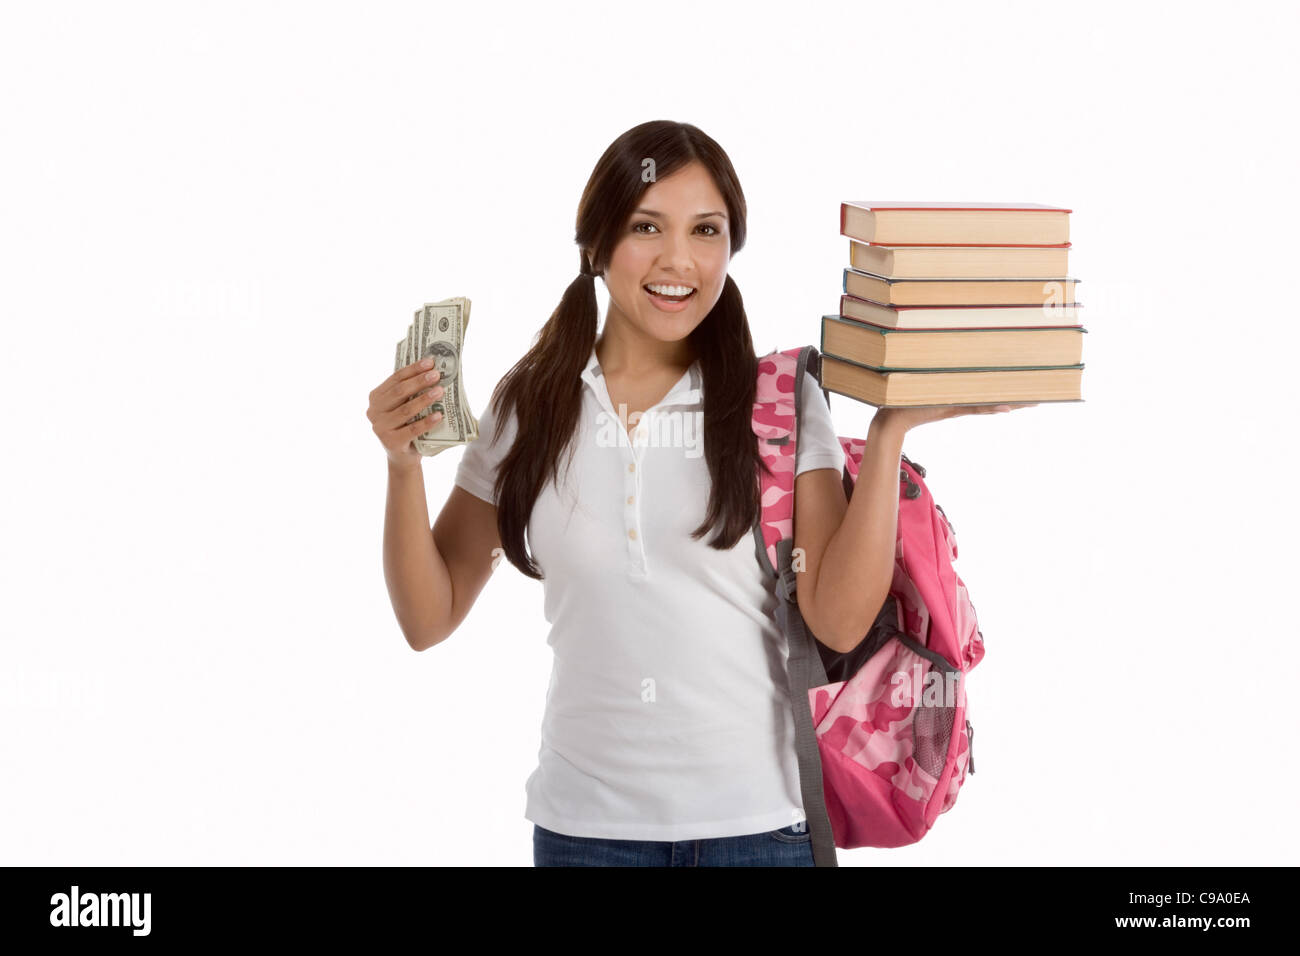 Ethnic Hispanic college student holds 100 (one hundred) dollar bills happy getting money help to subsidies costly - Stock Image